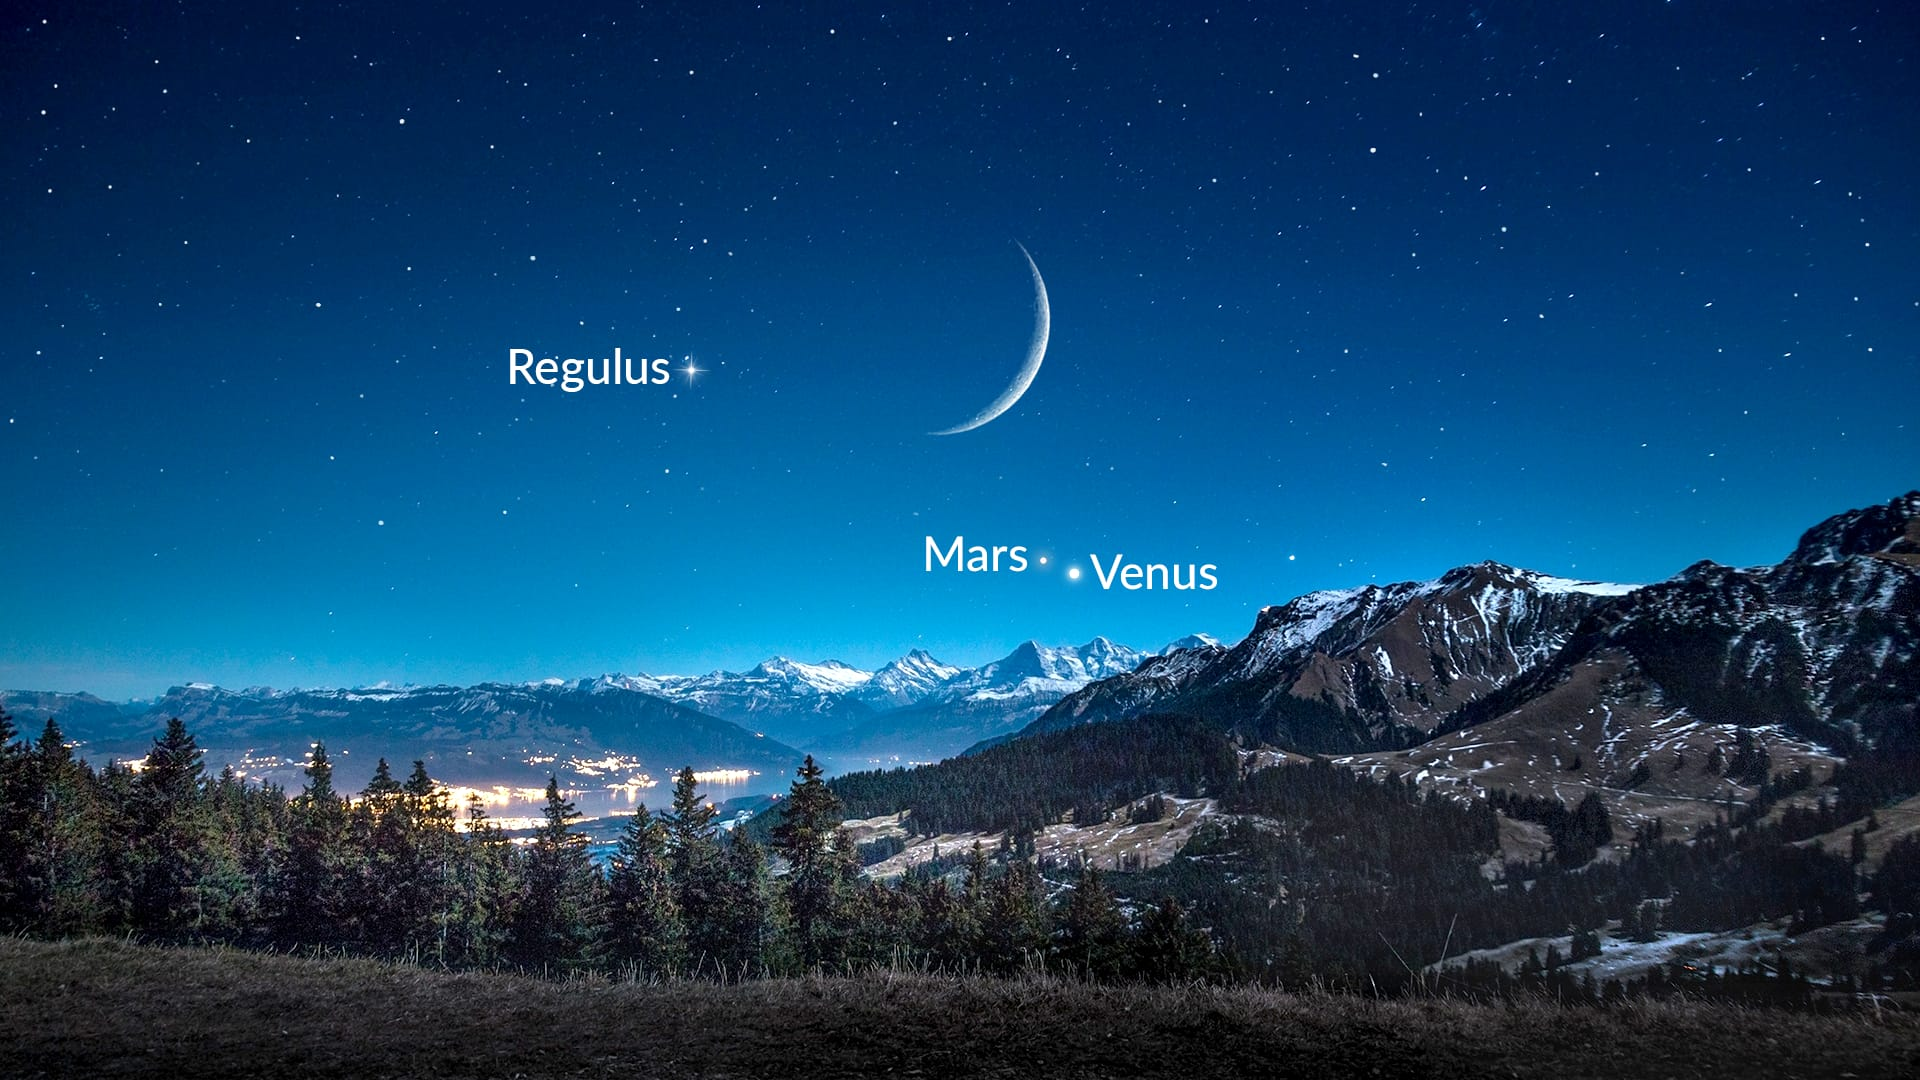 Spectacular Astronomy Conjunctions of the Moon, Mars, and Venus in July 2021